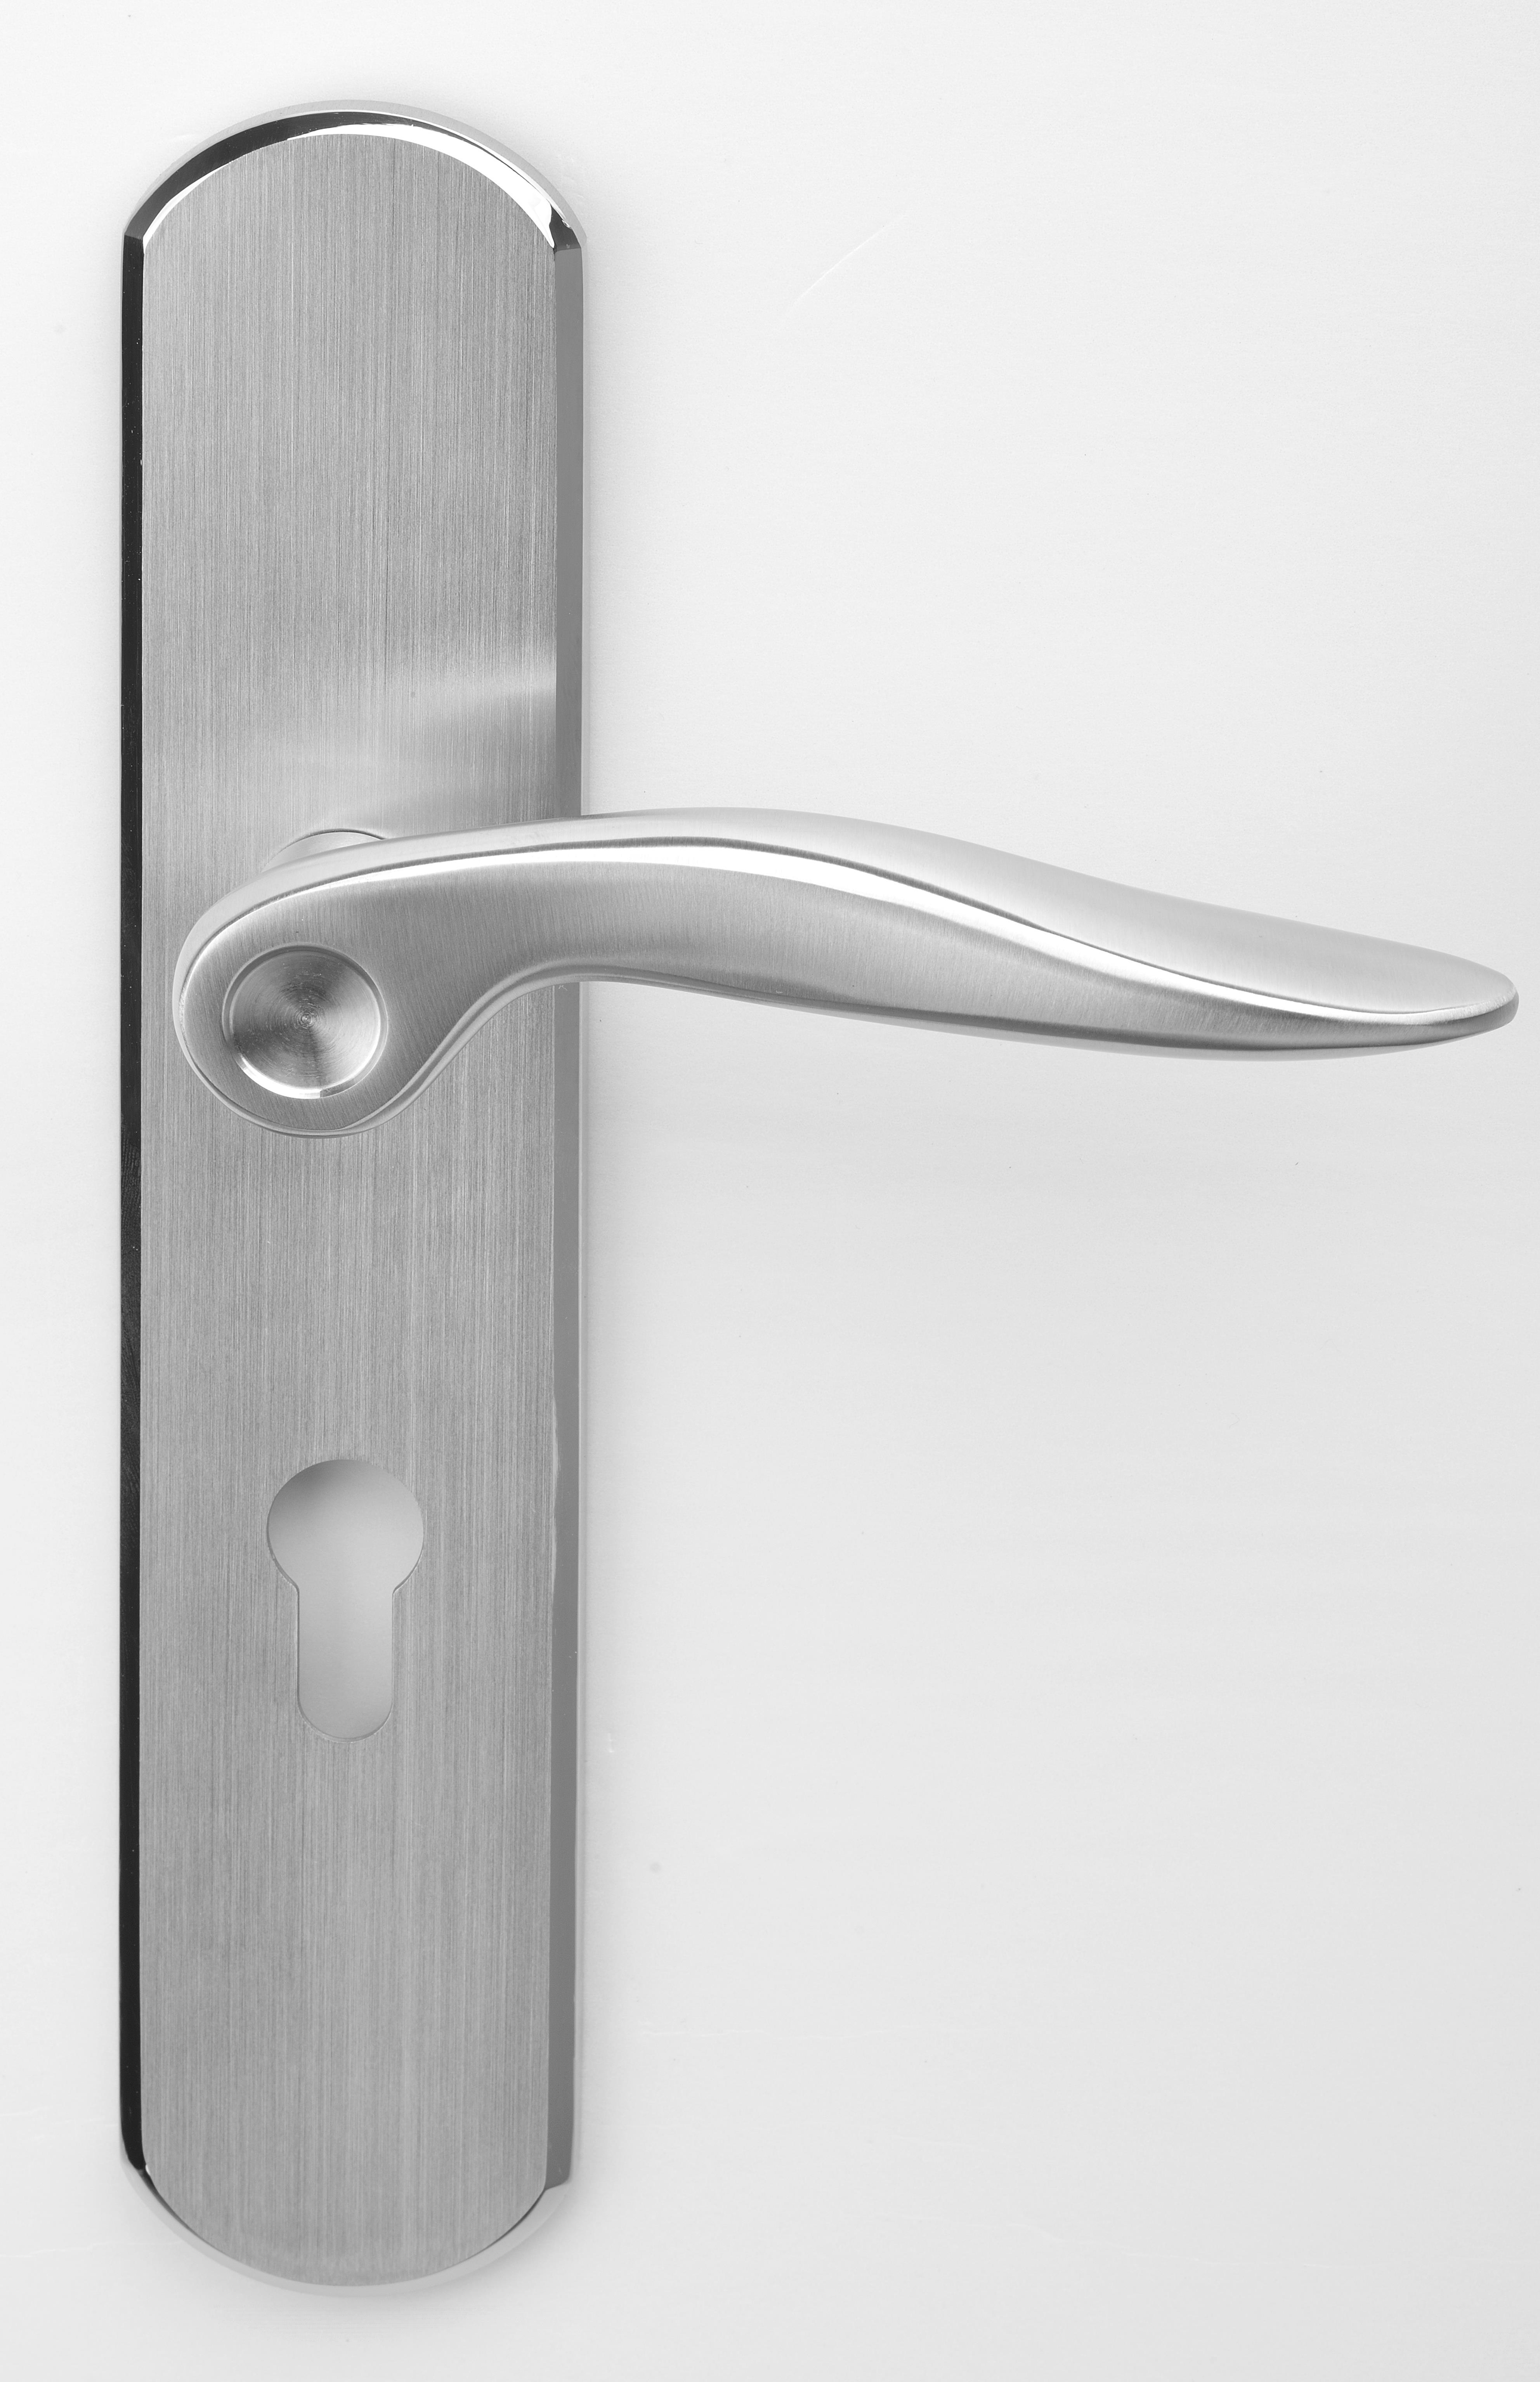 LHP-72-173-SSS - 173 Lever Handle on Plate